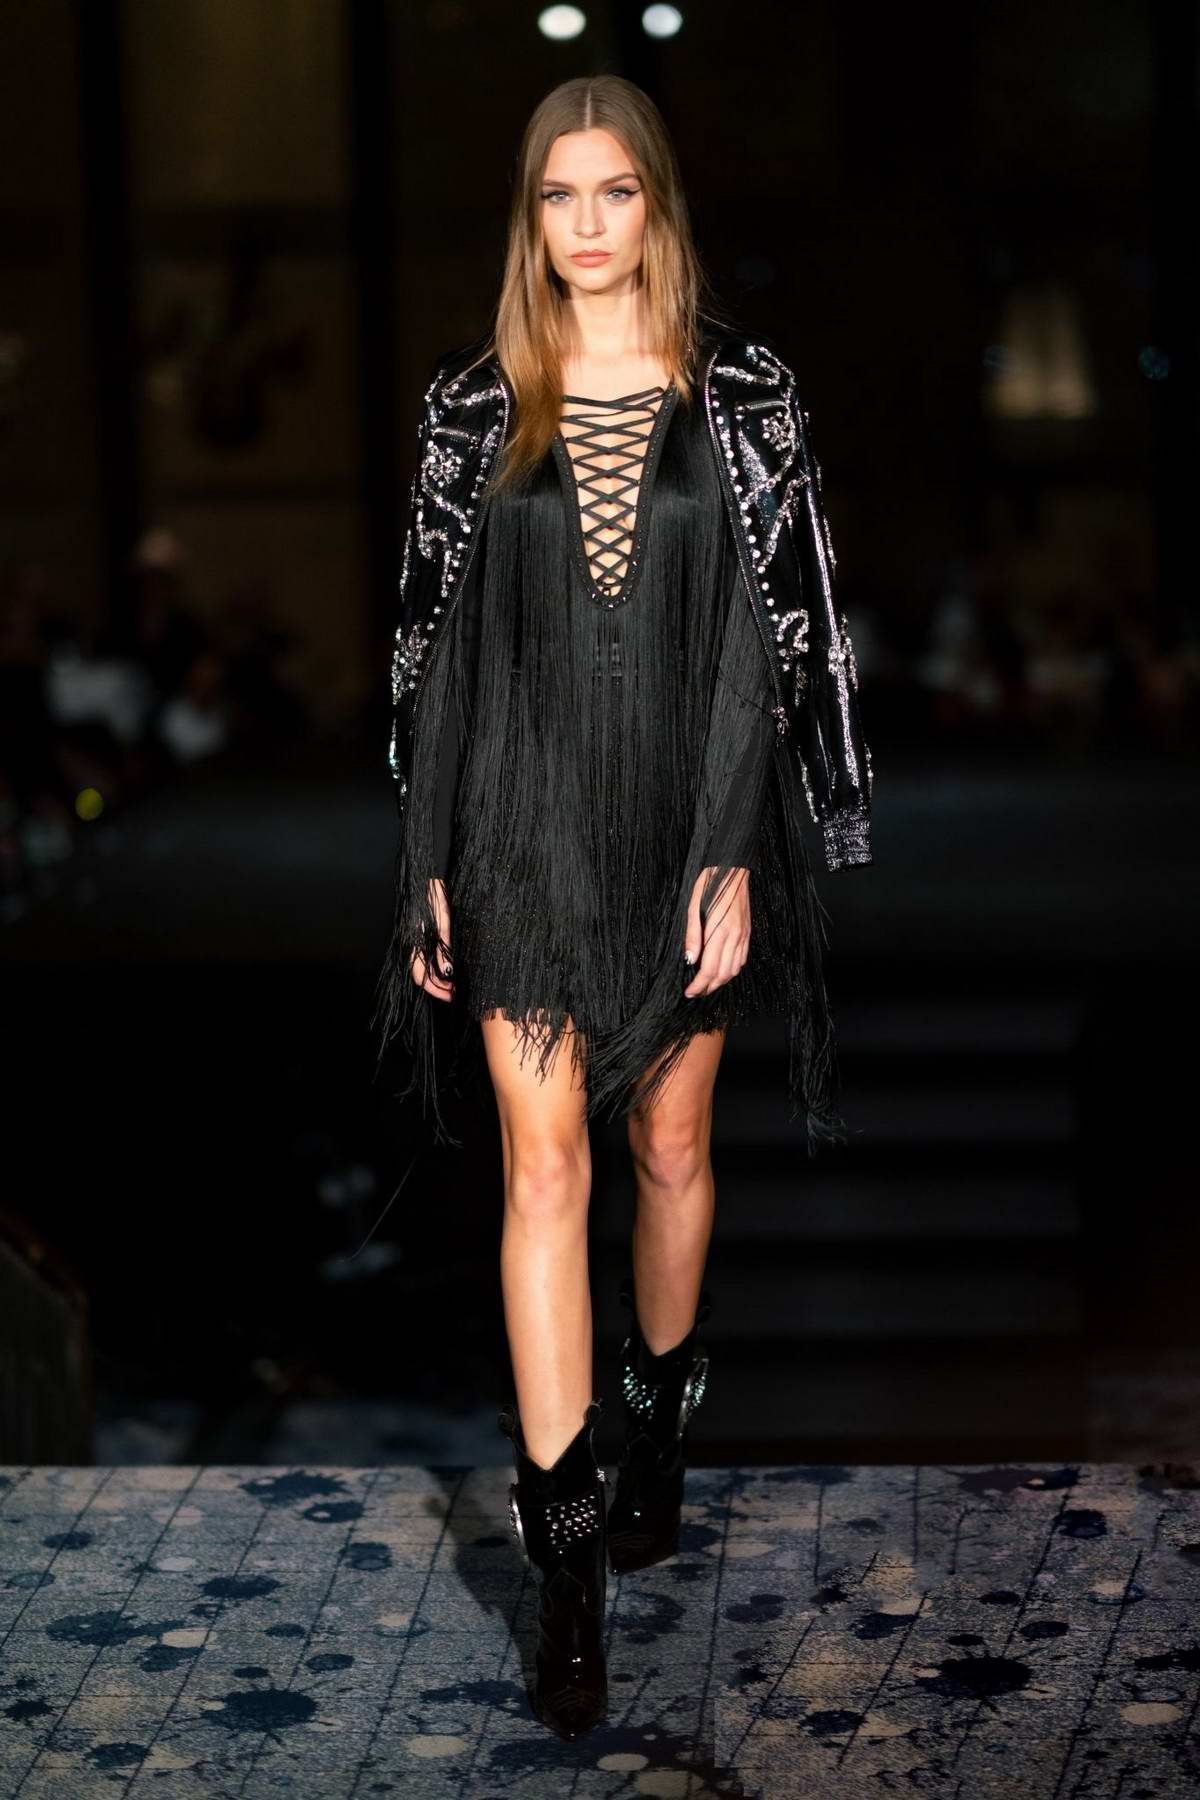 Josephine Skriver walks the runway at the Philipp Plein show during New York Fashion Week in New York City